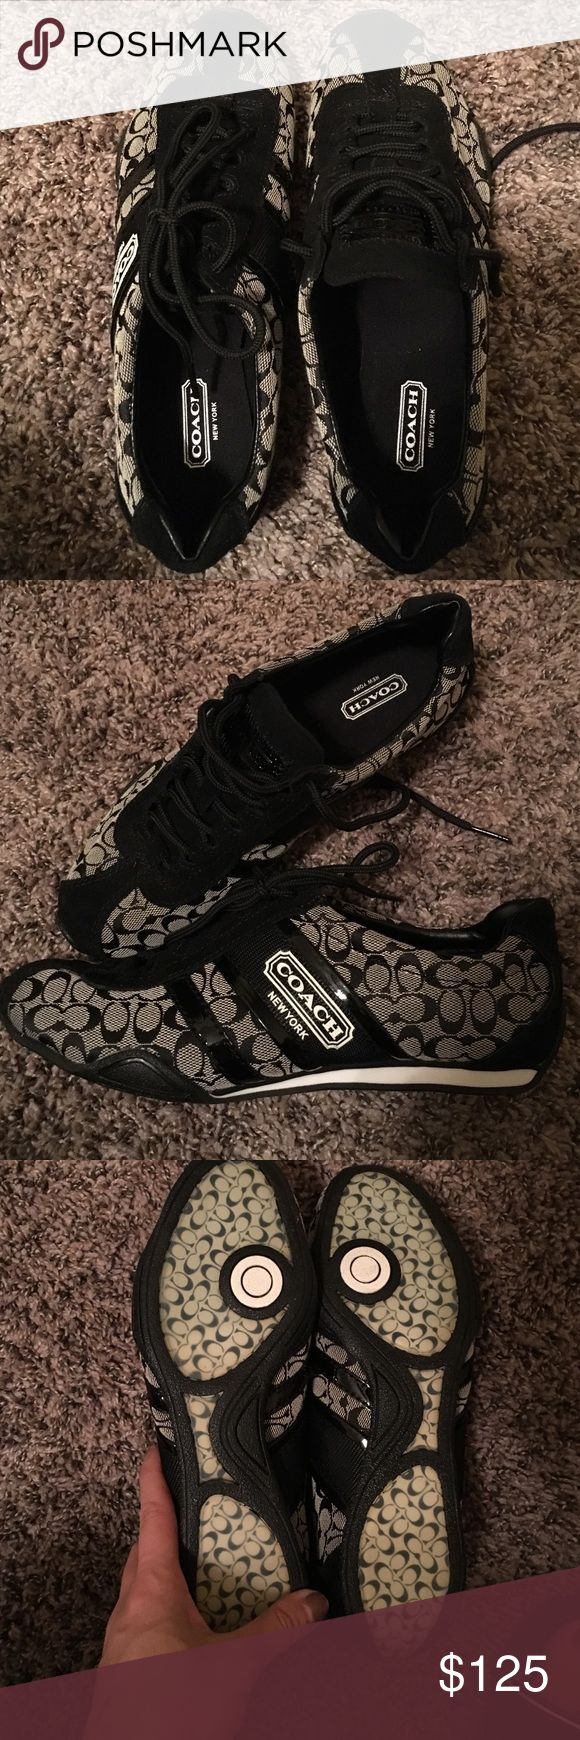 Coach tennis shoes Brand new and never been worn. Cute and stylish that can be dressed up or down while still being looked out together Coach Shoes Athletic Shoes